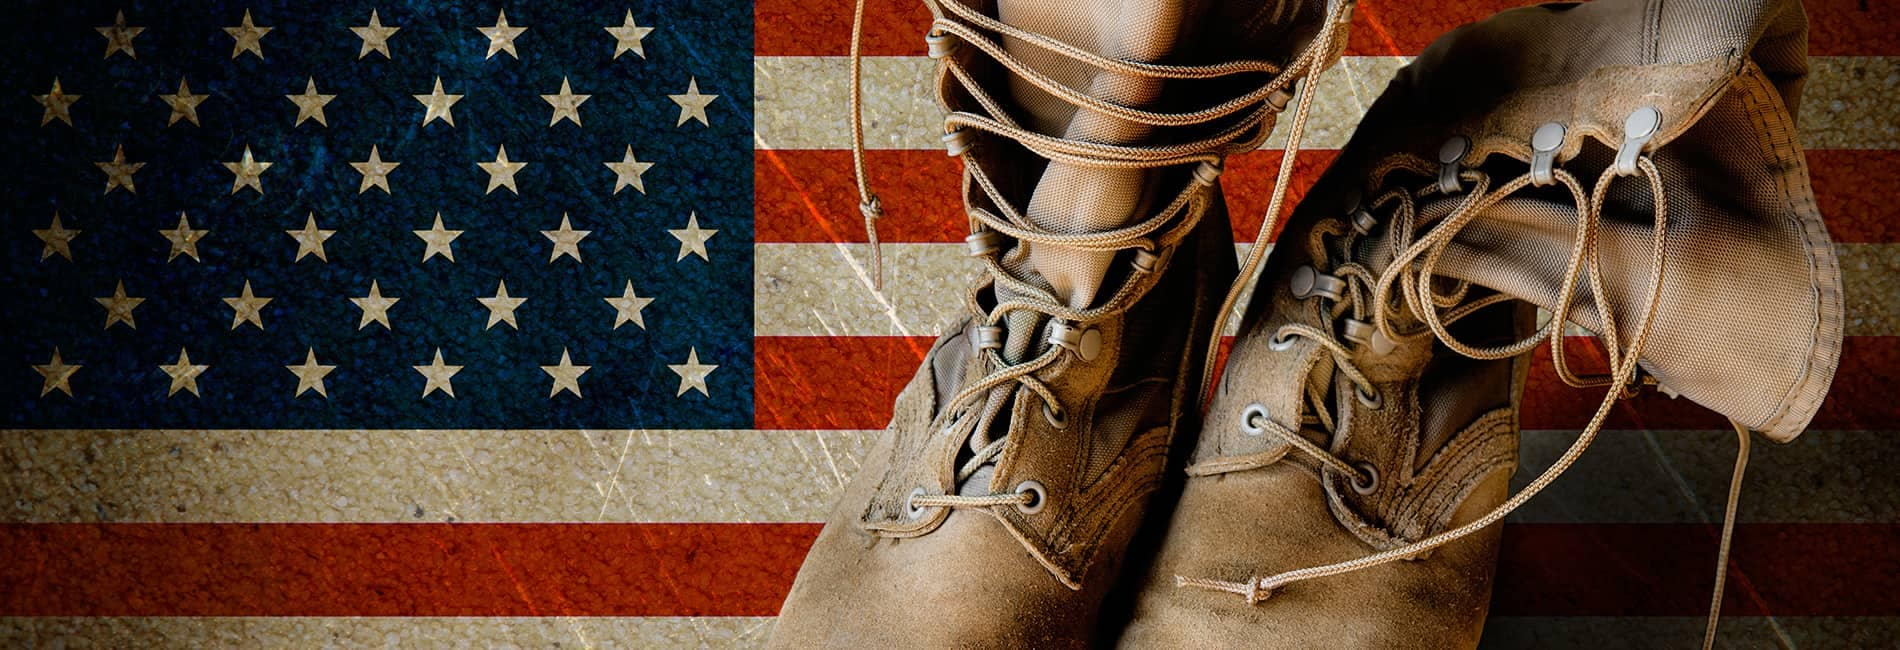 Military boots on American flag